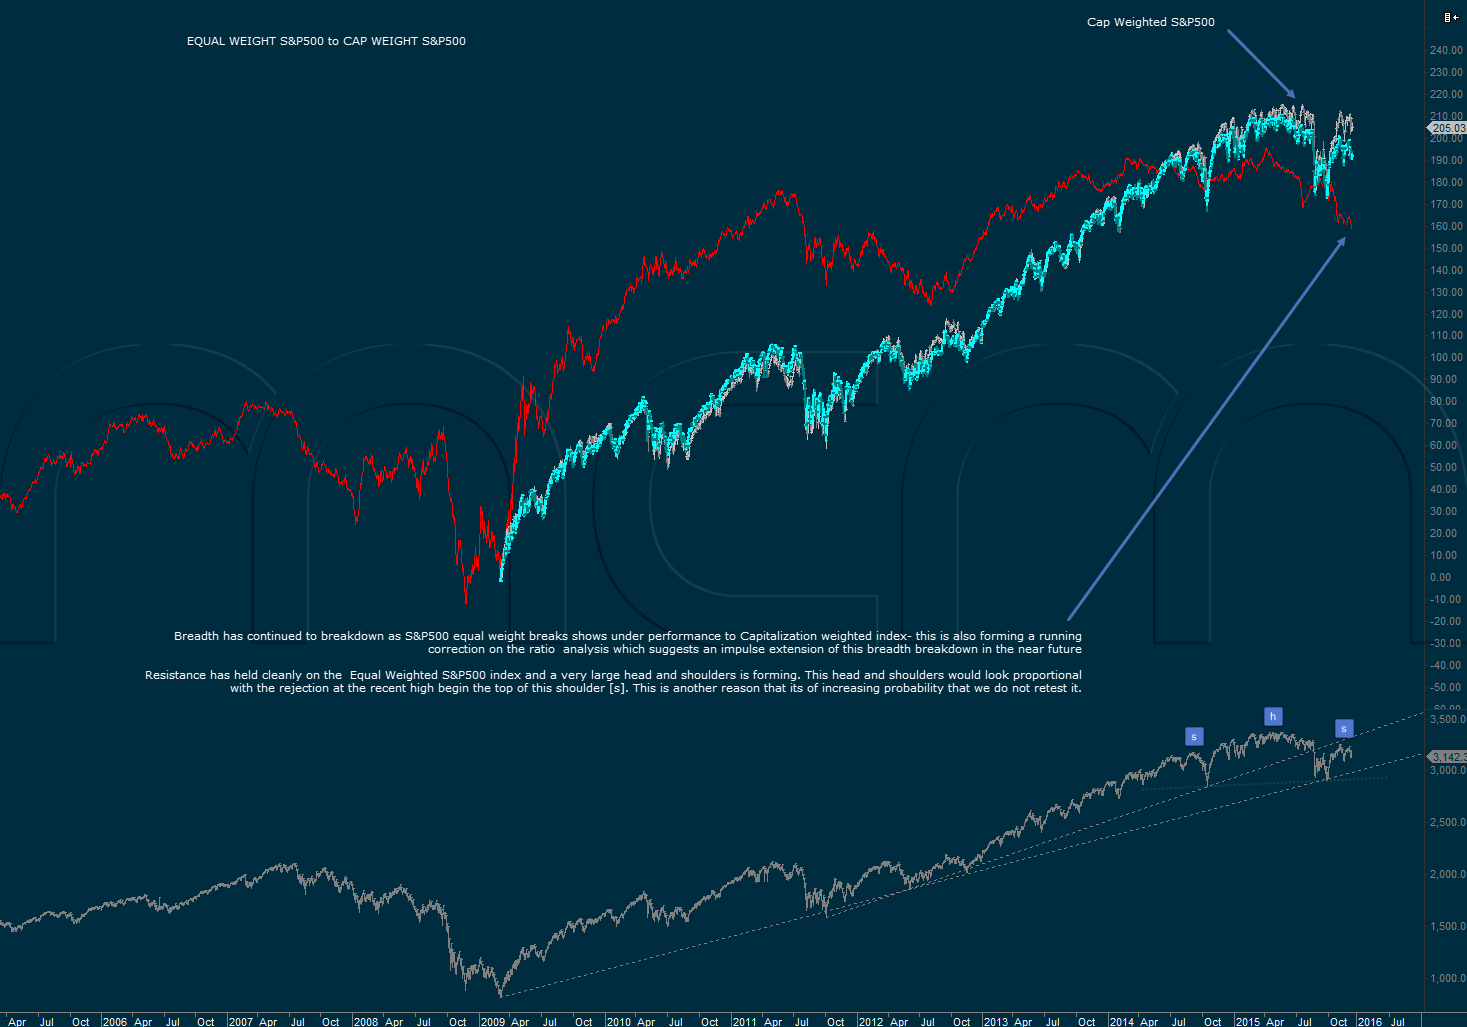 Equal-weight S&P500 Analysis Compared to Cap Weighted S&P500